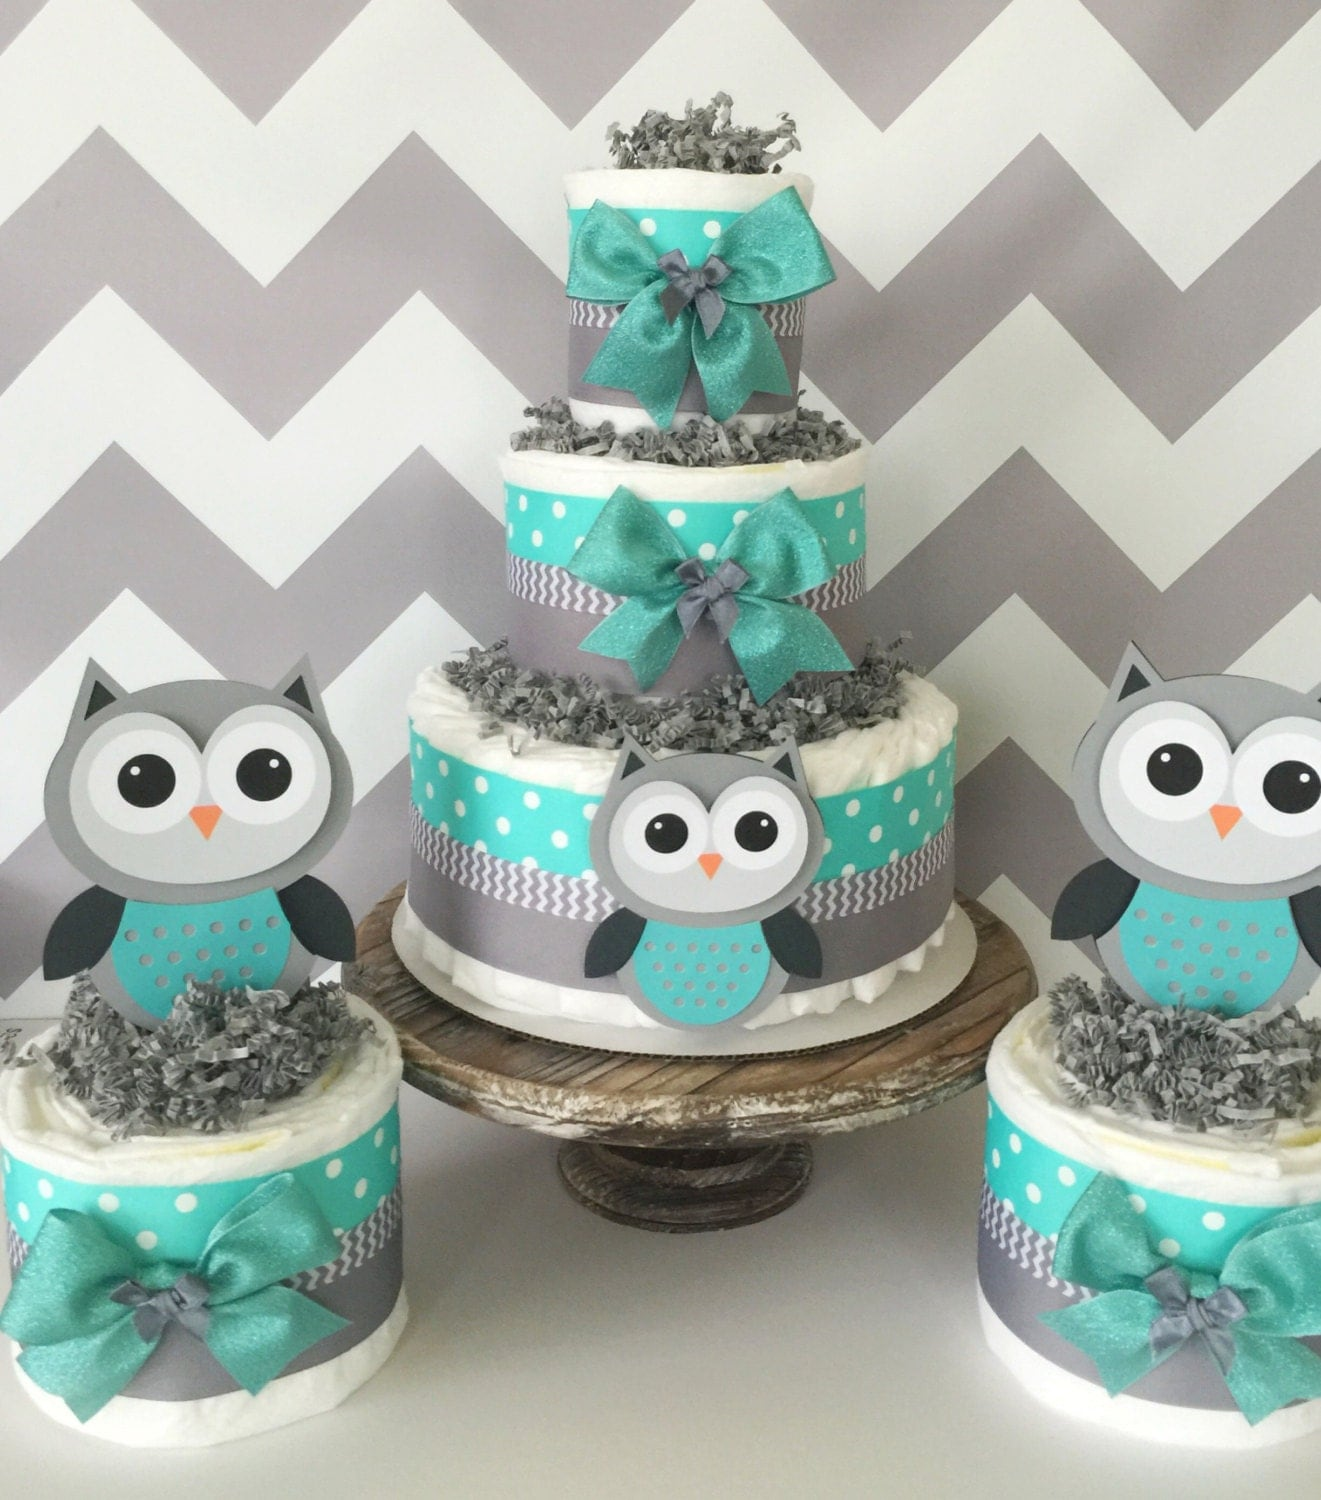 Owl Cupcakes For Baby Shower: SET OF 3 Owl Diaper Cakes In Turqoise/Teal Gray And White